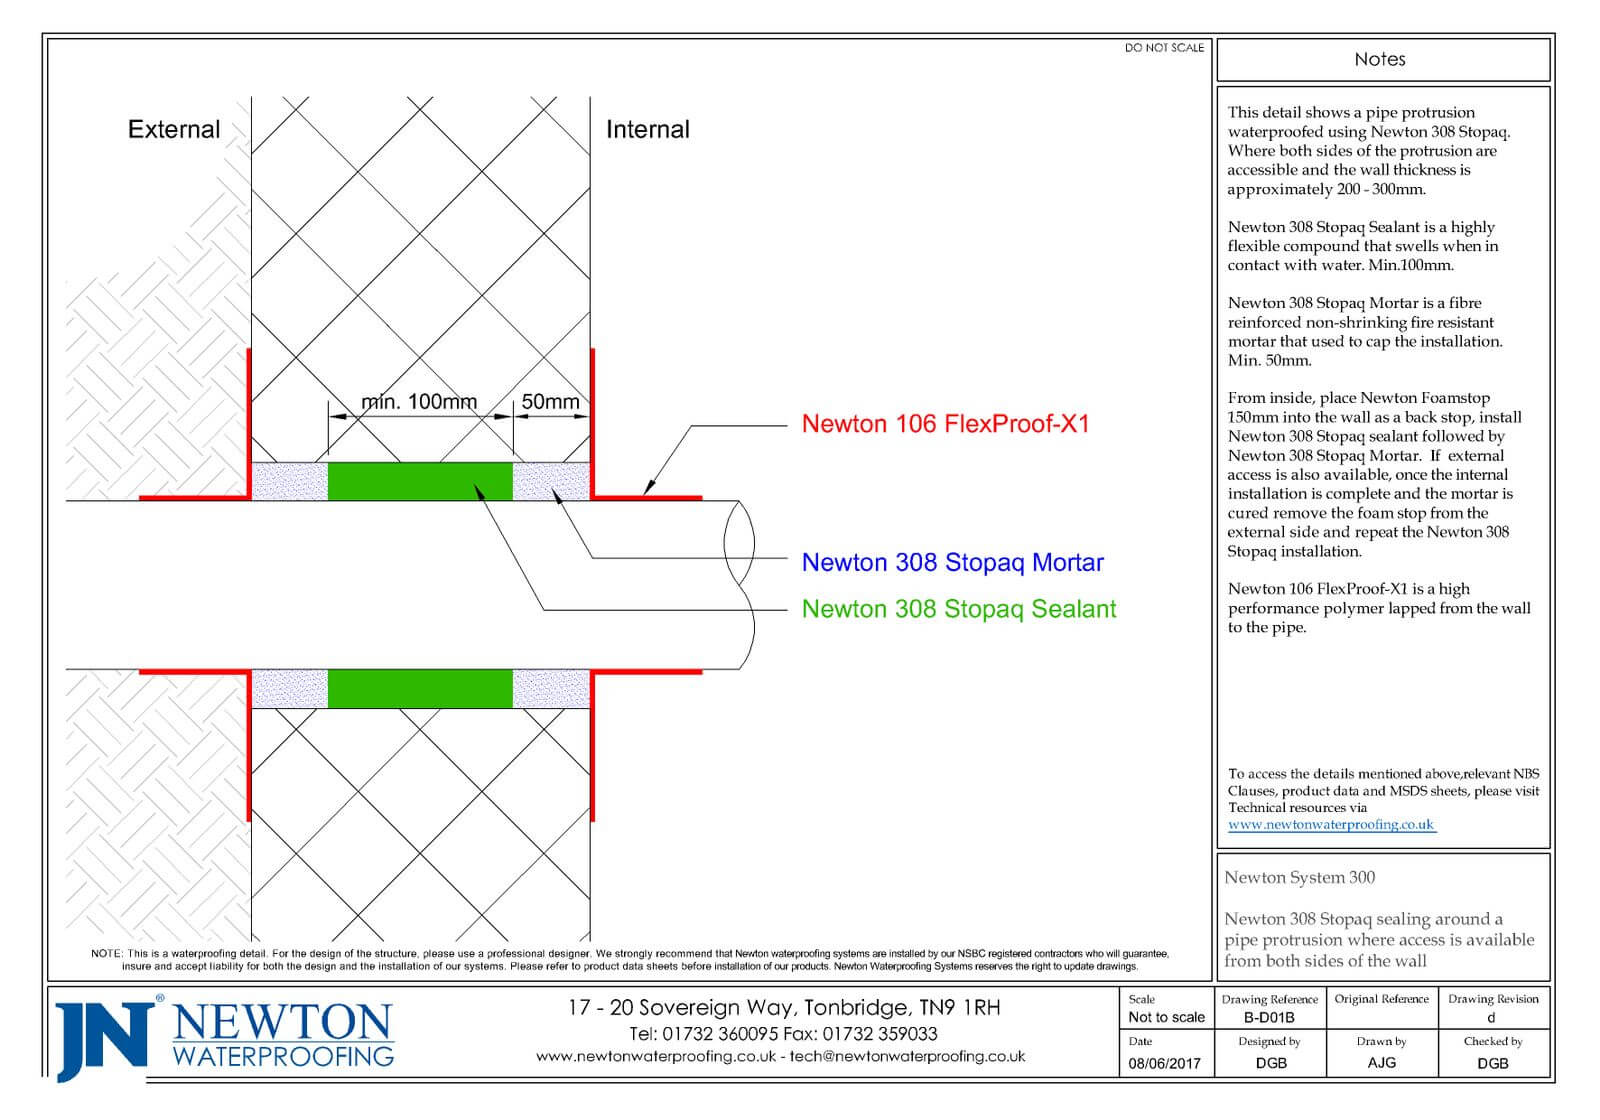 Technical Drawing - Newton 308 Stopaq sealing around a pipe protrusion